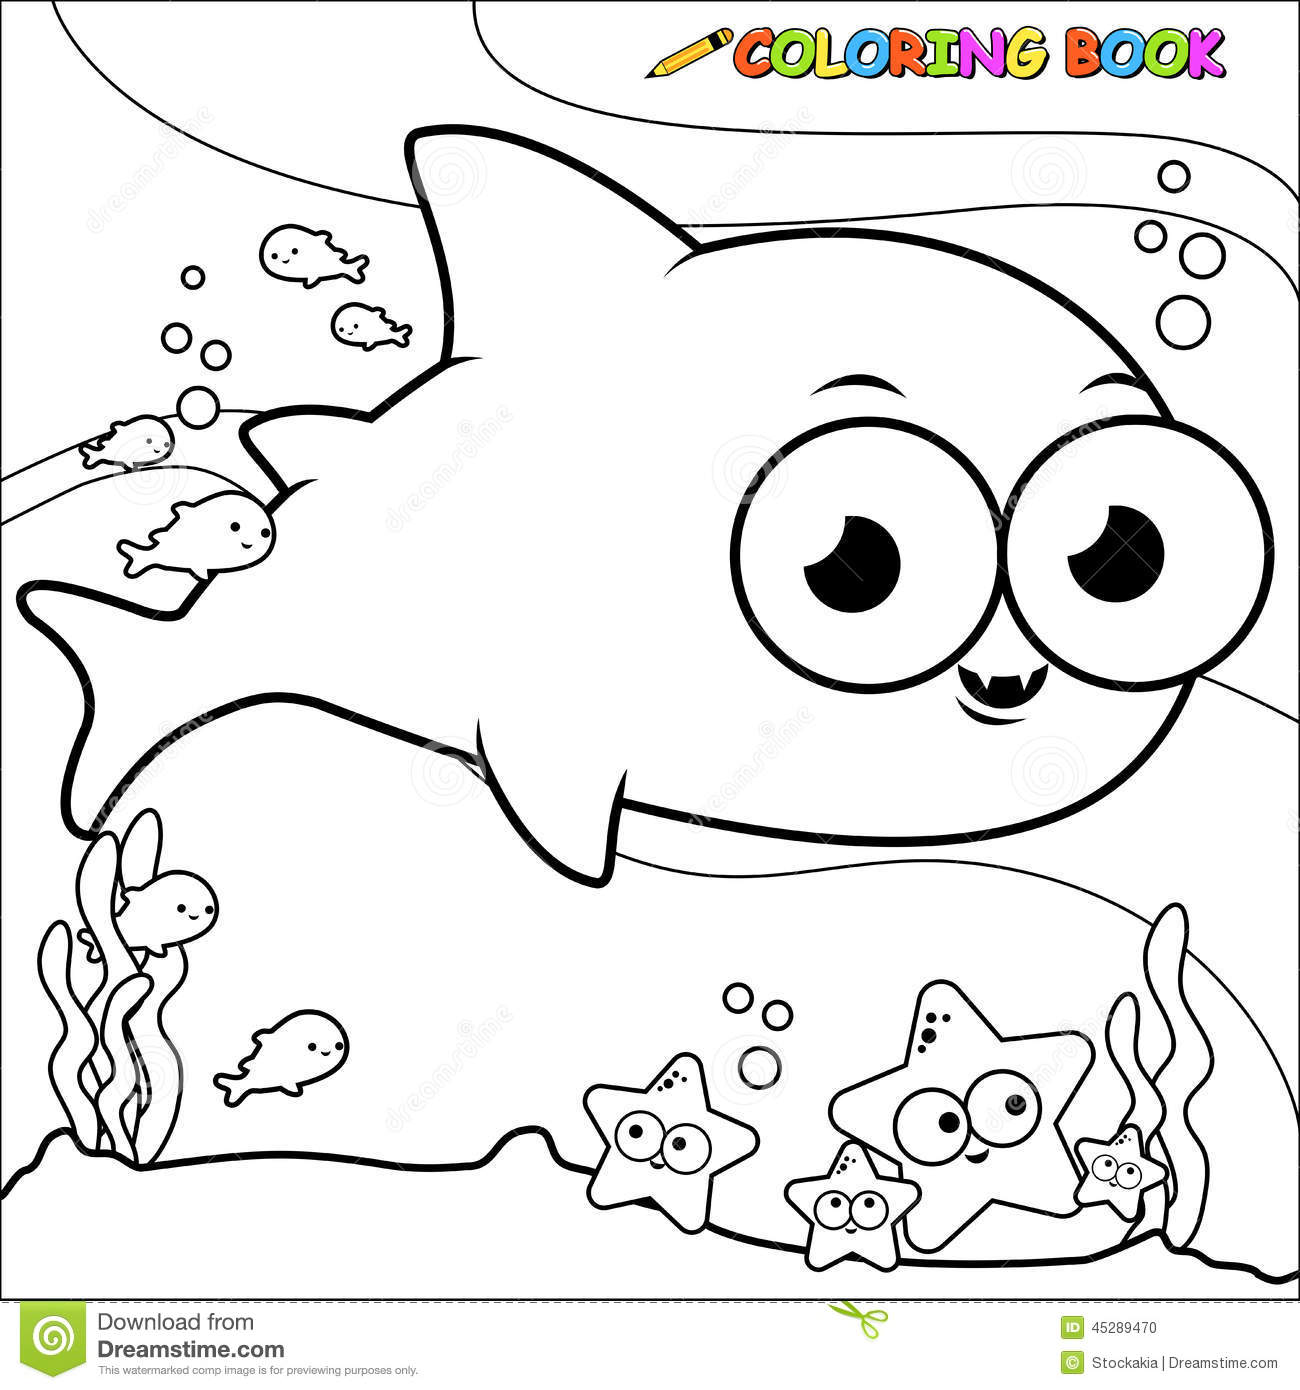 Coloring Book Underwater Shark Stock Vector - Illustration of ...